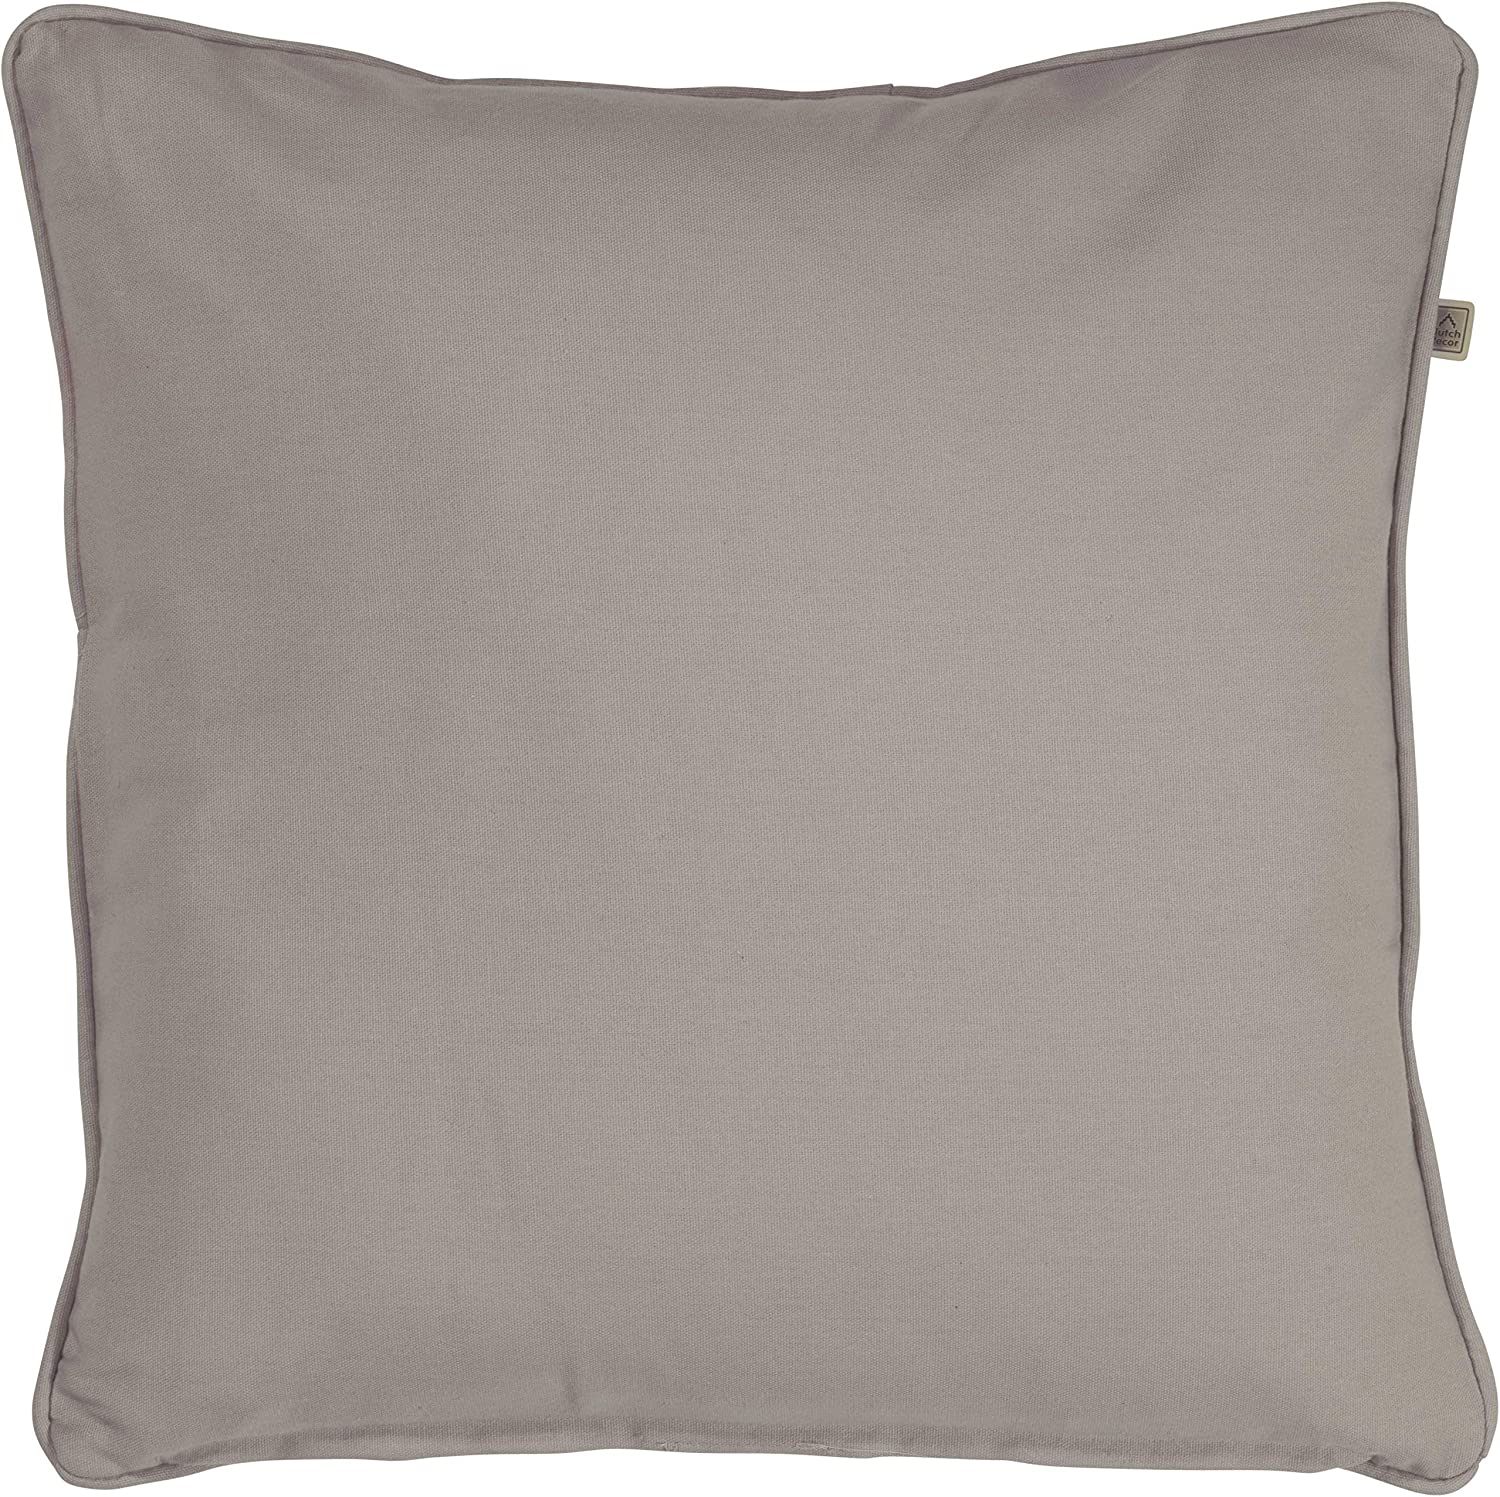 Dutch Decor Cushion cover Java 70x70 cm taupe Cushion case Pillow cover Pillowcase Throw pillow cover With zipper